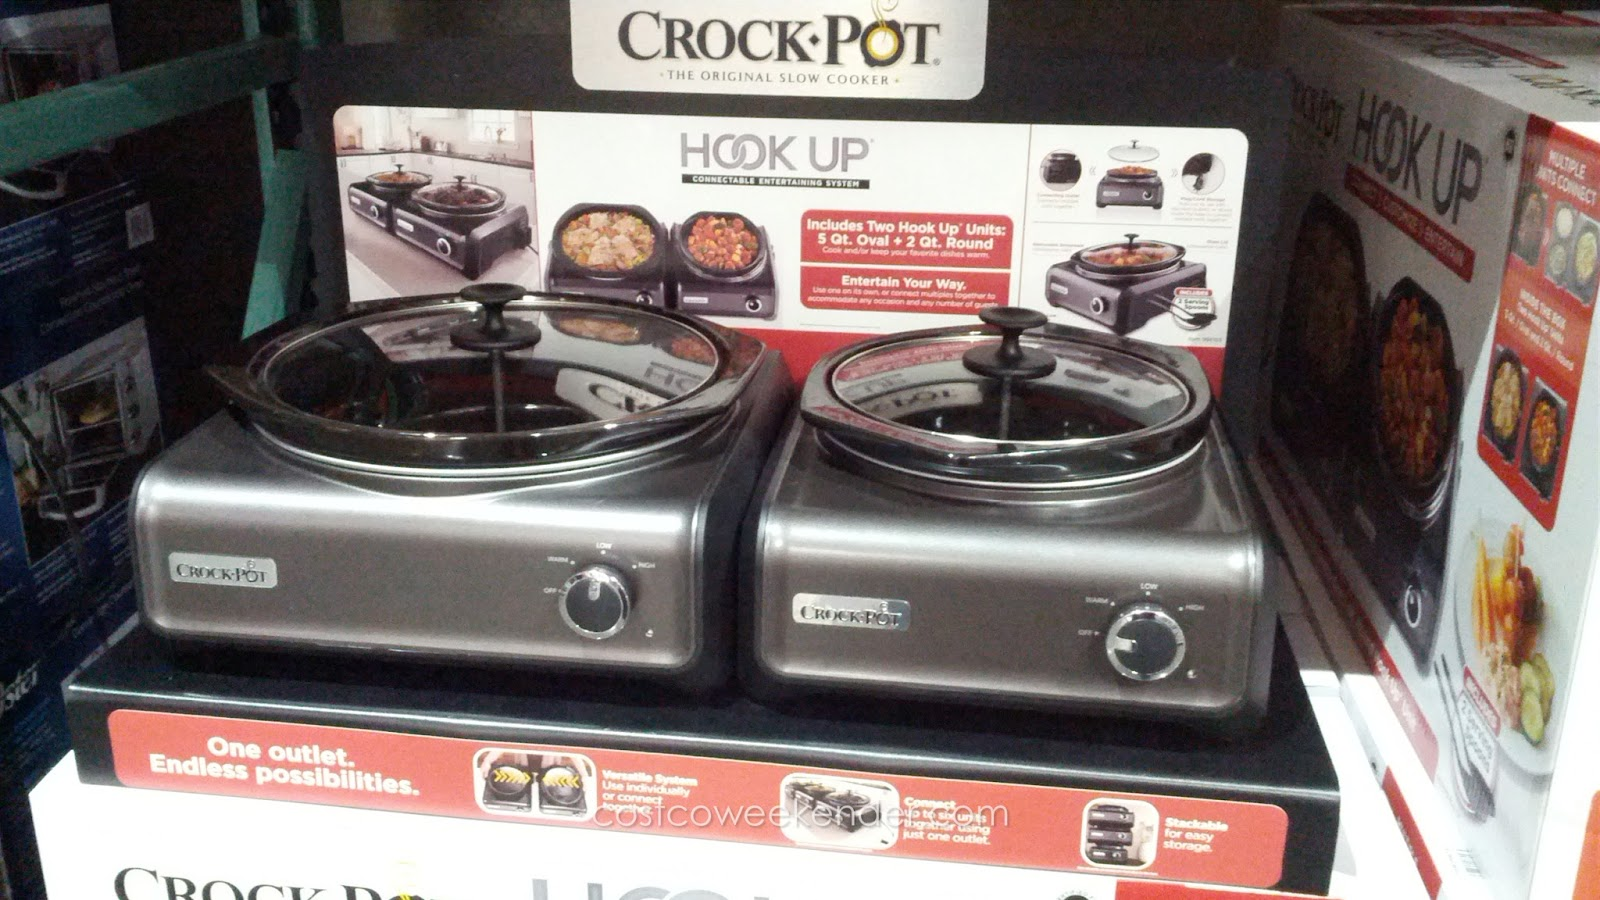 Crock Pot Hook Up Connectable Entertaining System: Great For Parties